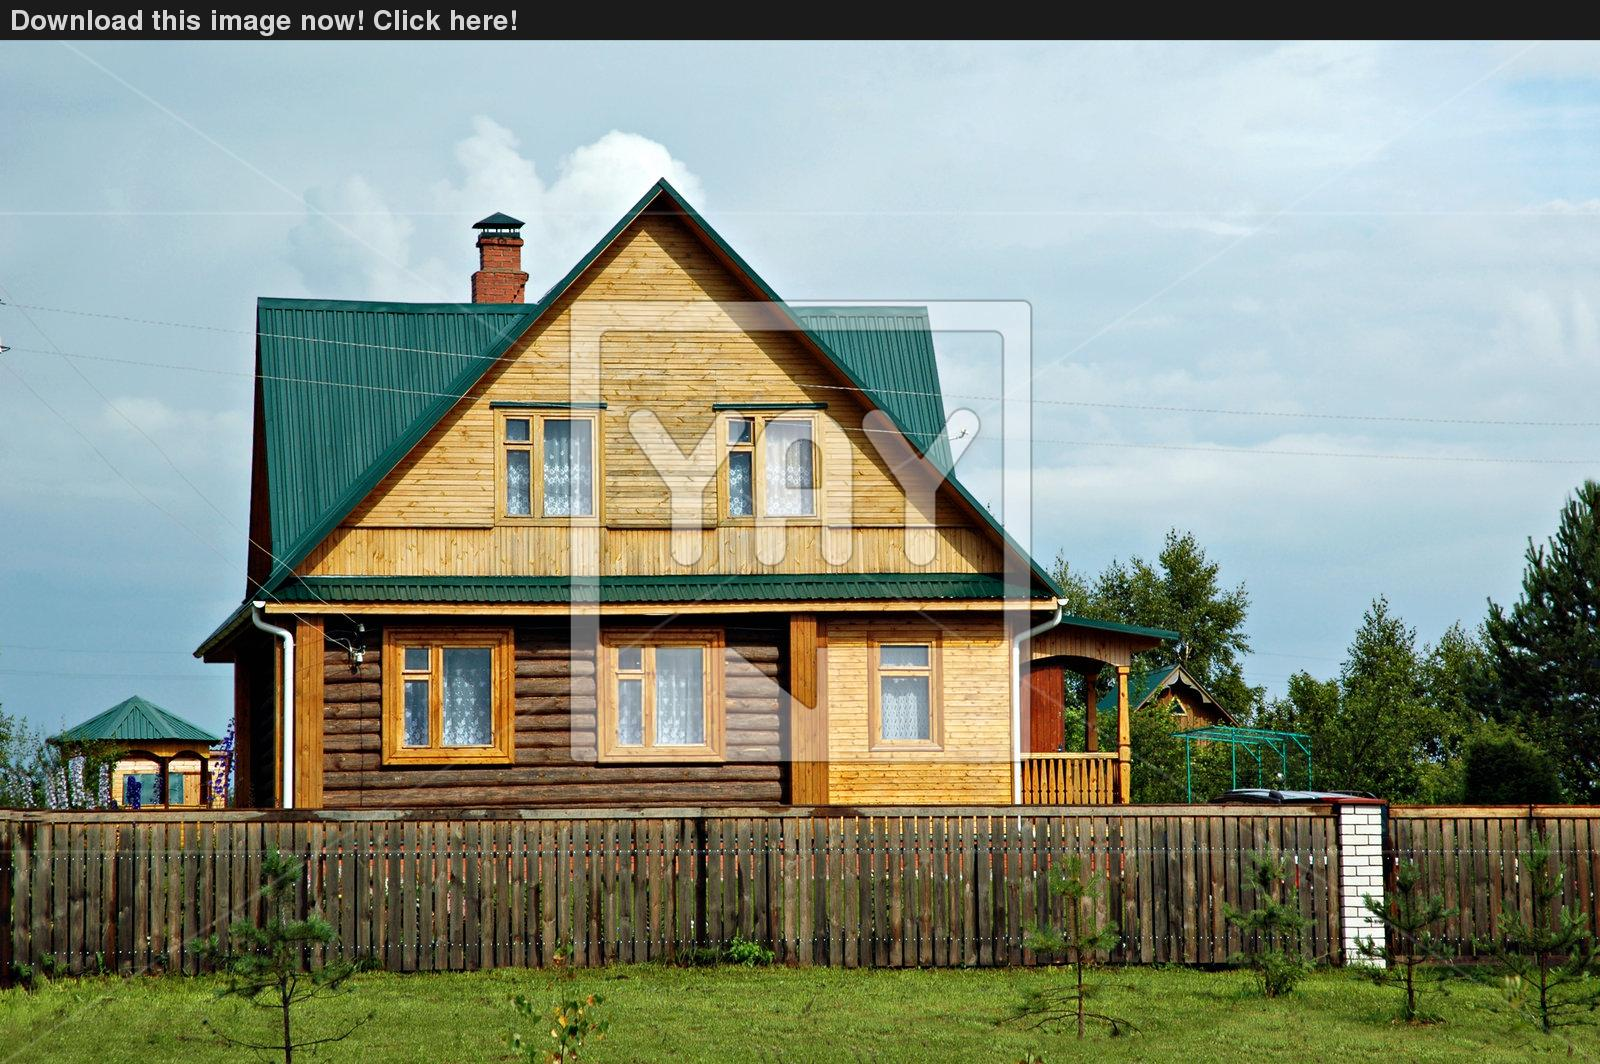 wooden country house photo - 2